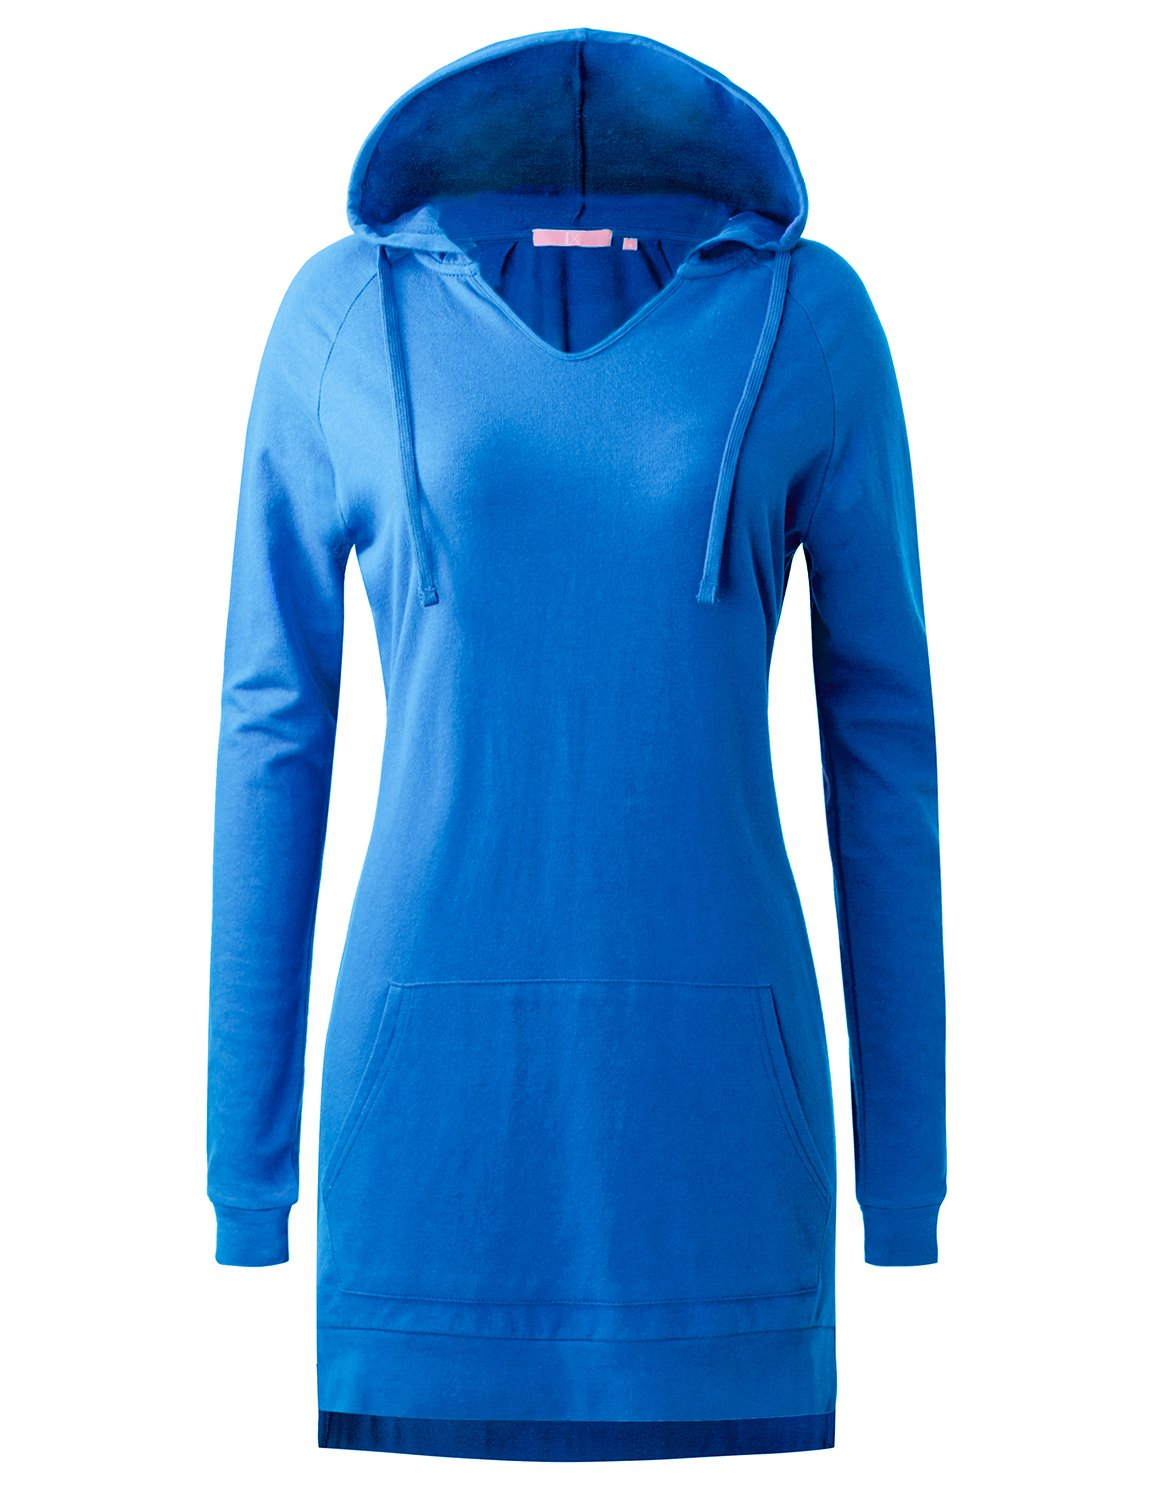 Regna X Women's Long Sleeve Casual Relaxed fit Sweatshirt Hoodie Top Blue 2XL